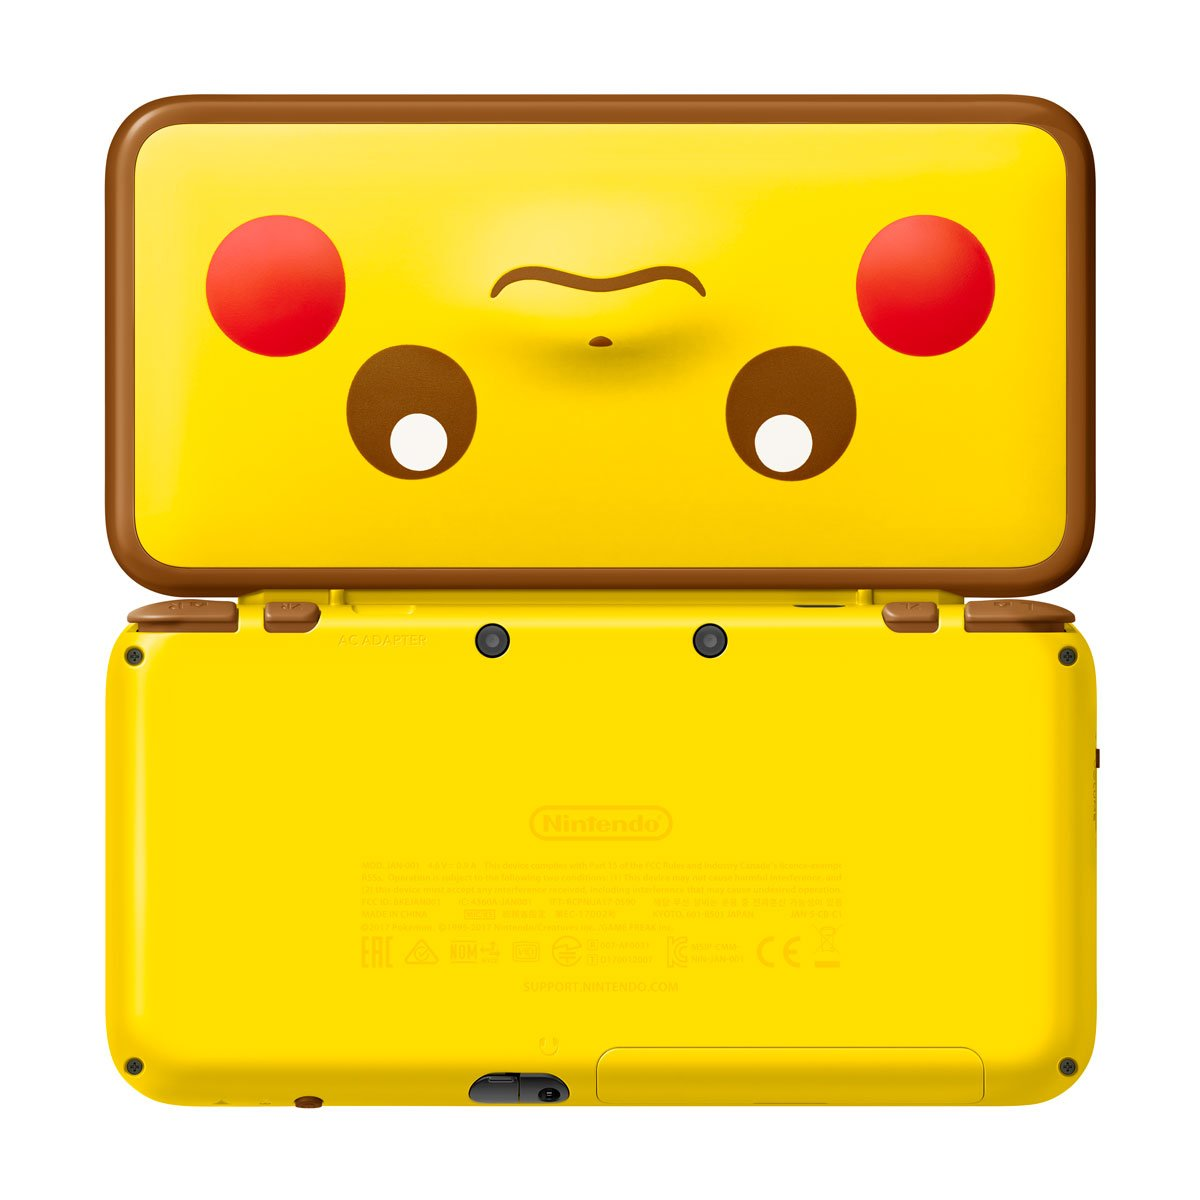 official pictures of the pikachu edition new nintendo 2ds. Black Bedroom Furniture Sets. Home Design Ideas